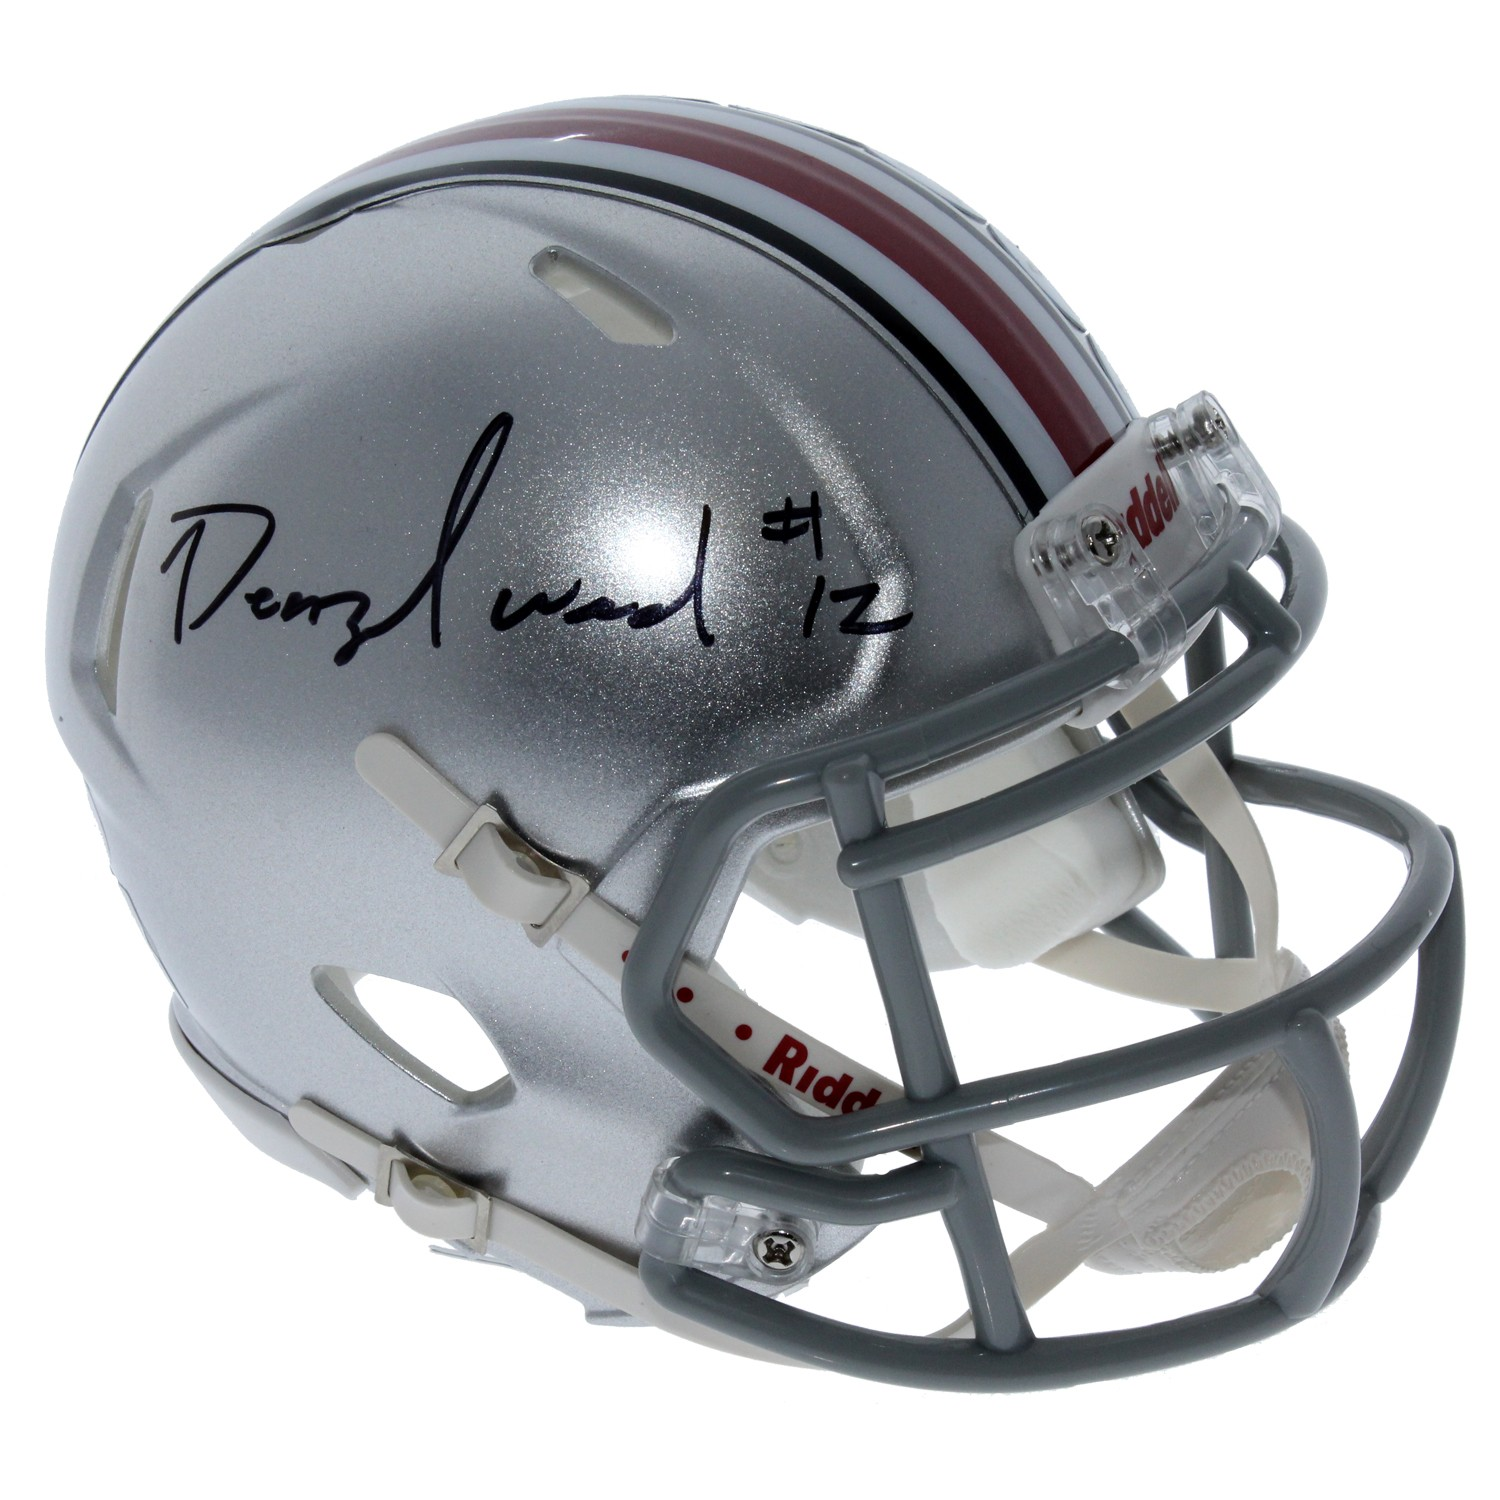 sneakers for cheap 6c06c 6cd8b Denzel Ward Ohio State Buckeyes Autographed Signed Riddell ...